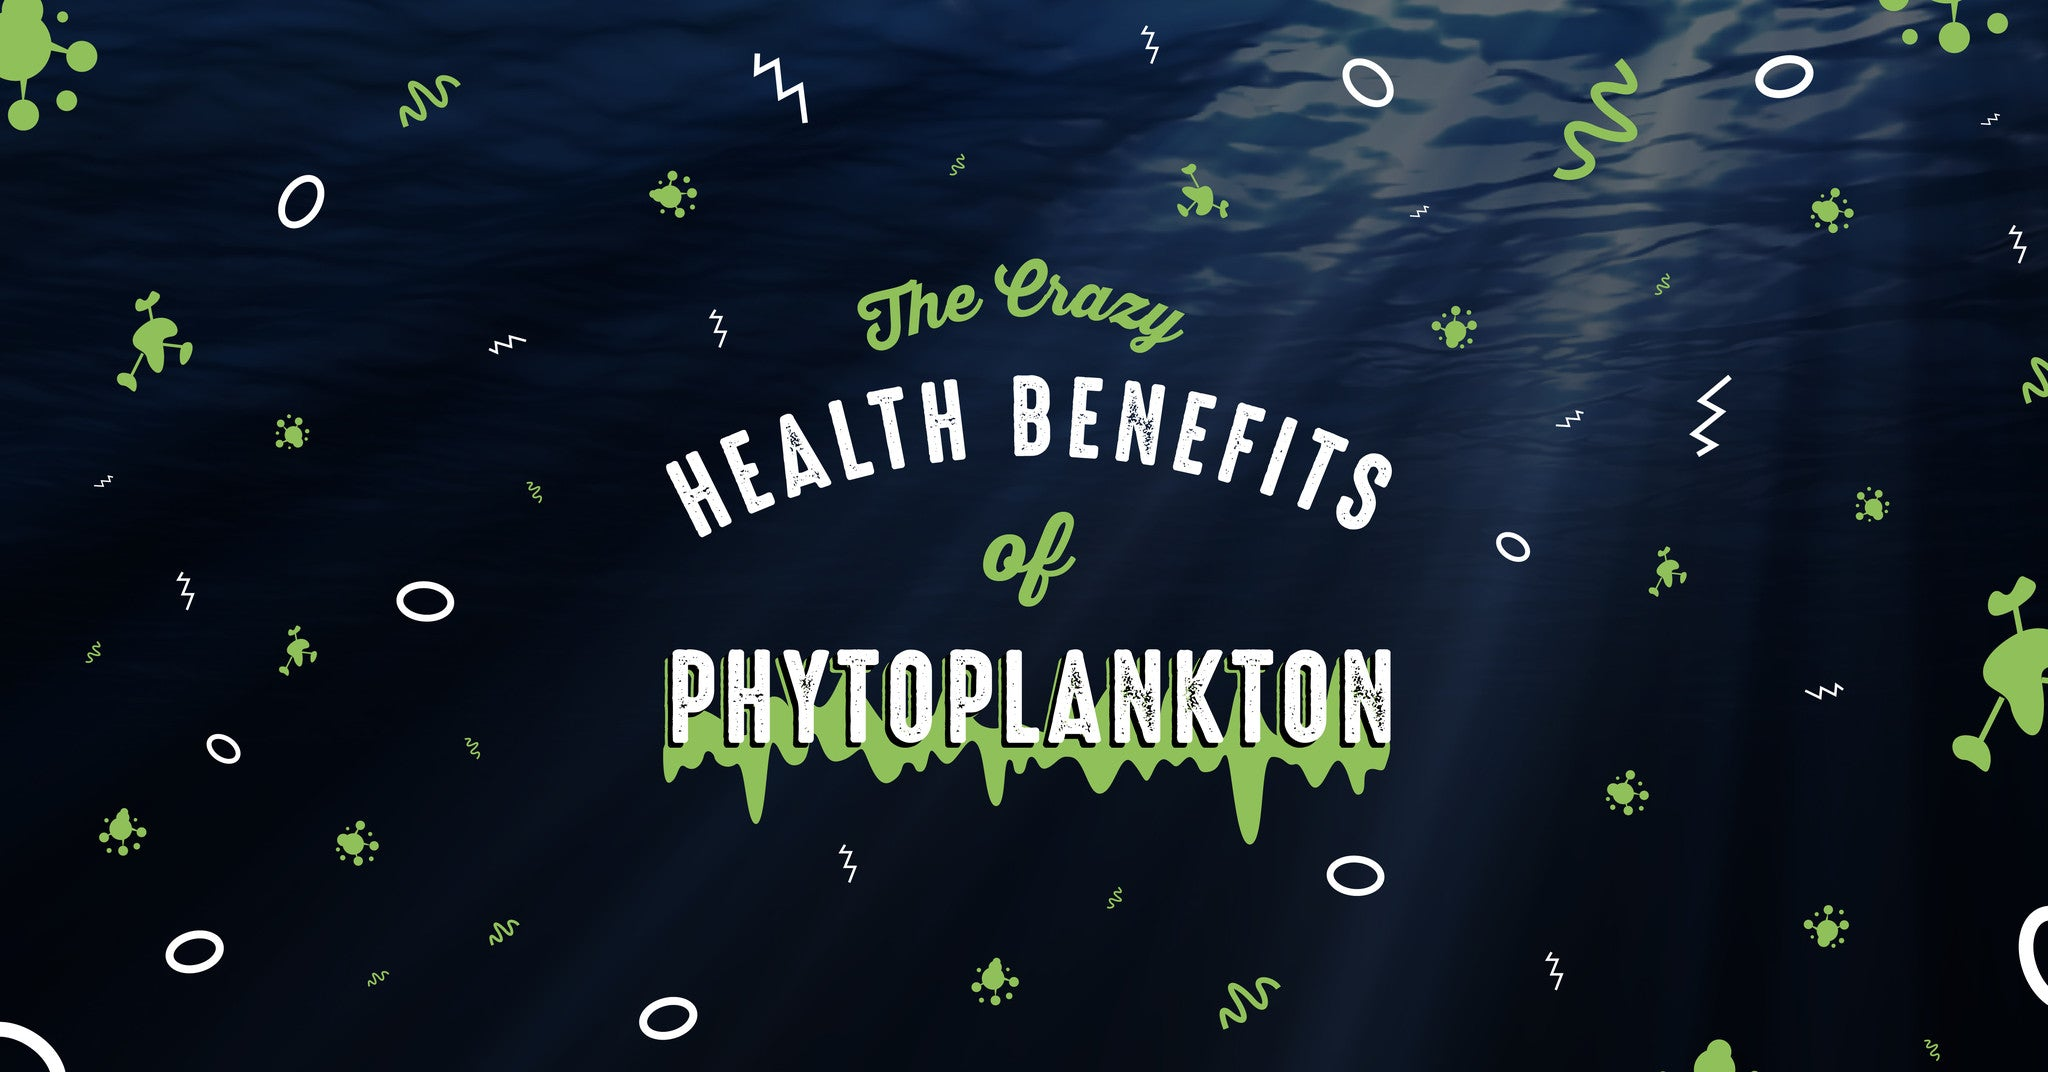 Phytoplankton Benefits